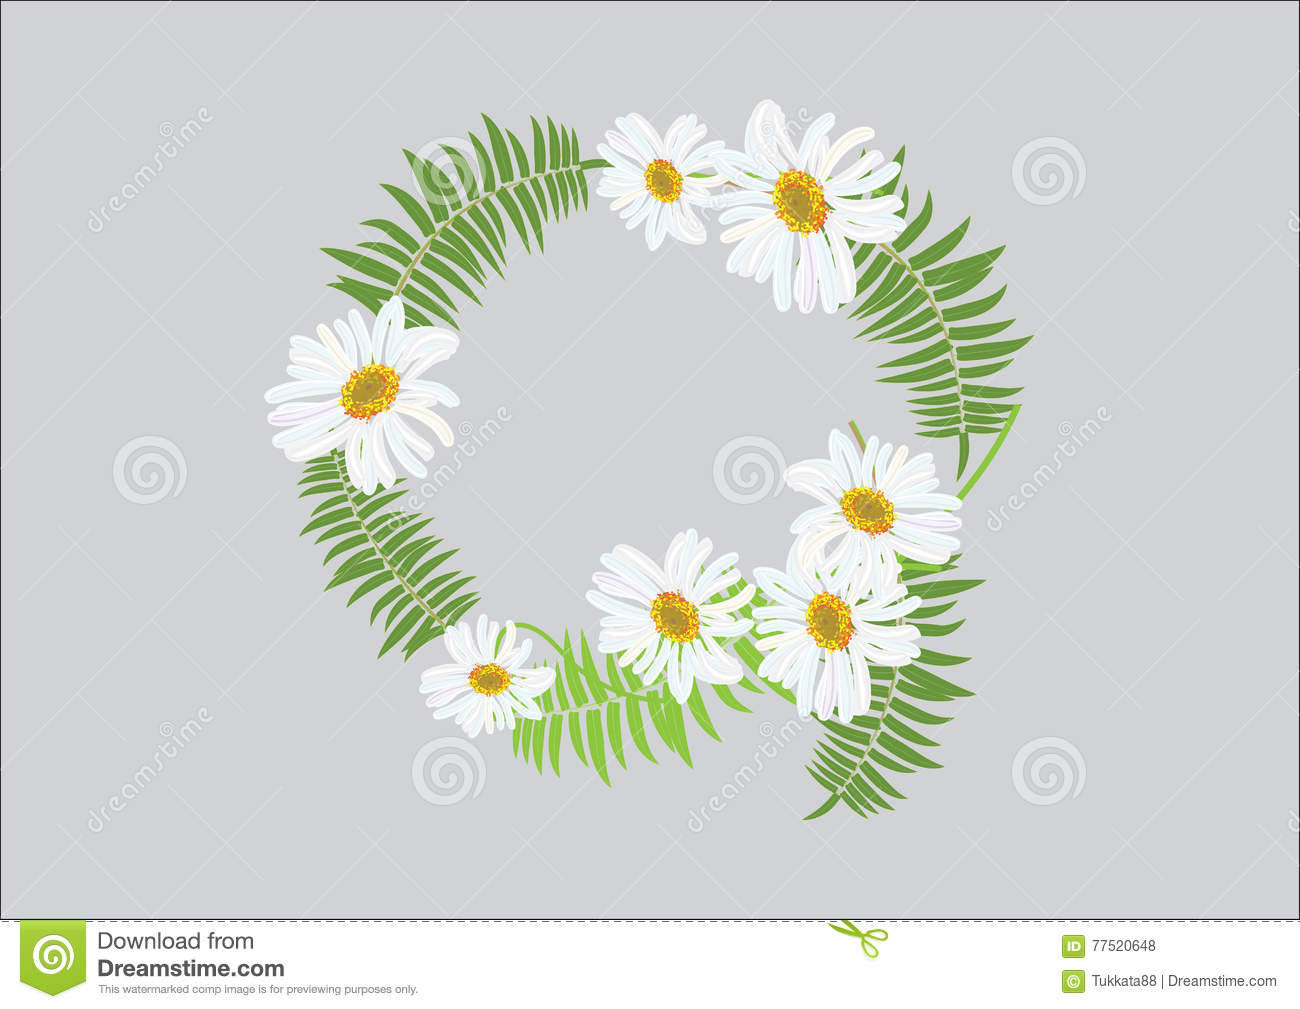 Crown Daisy Flower With Fern Headband Design Top View And Side